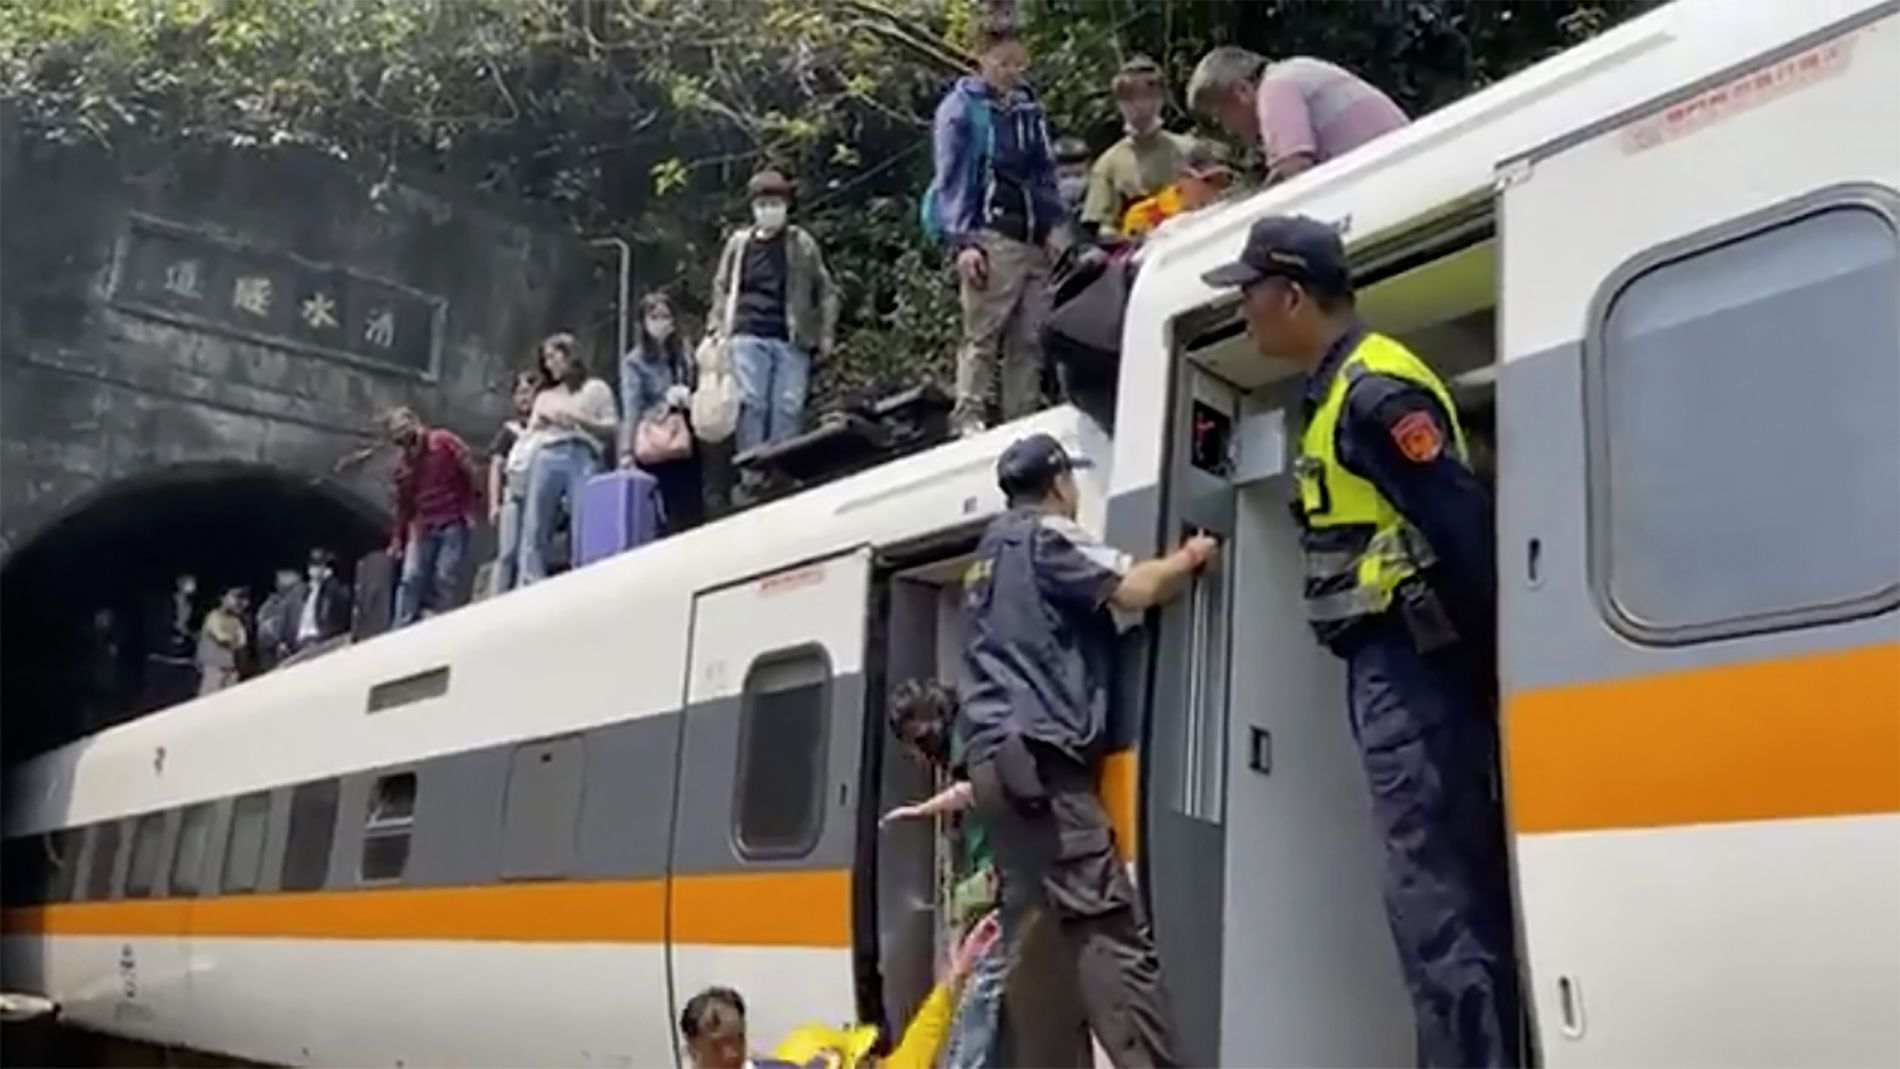 36 died in a train accident in Taiwan: